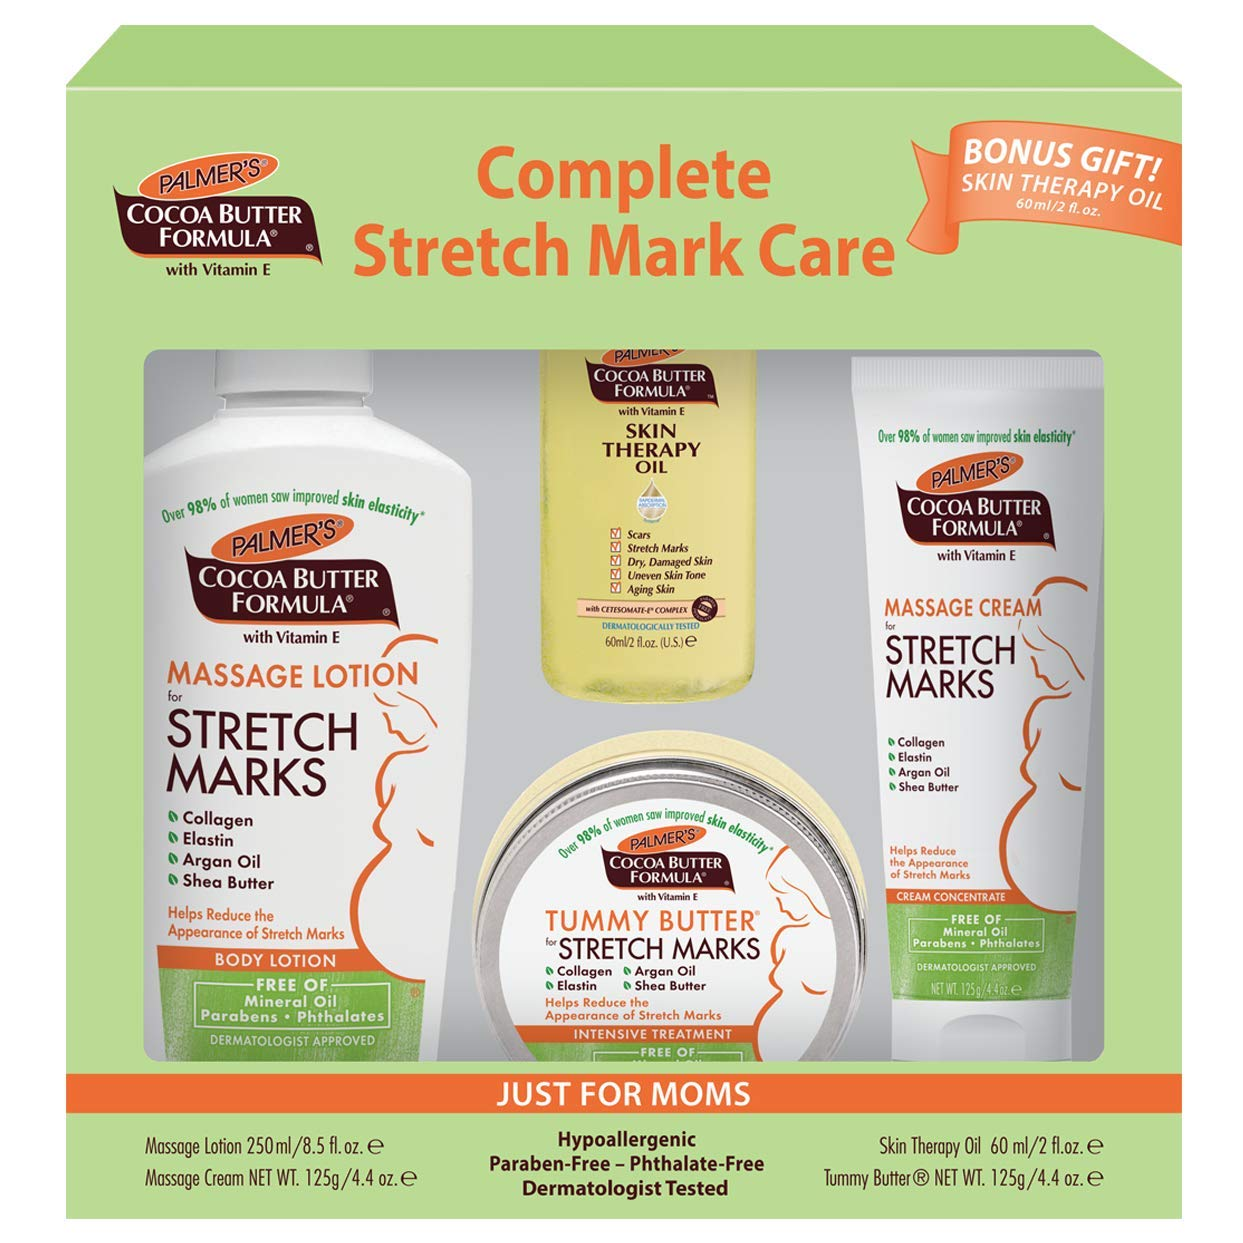 Palmer's Cocoa Butter Formula Complete Stretch Mark & Pregnancy Skin Care Kit by Palmer's